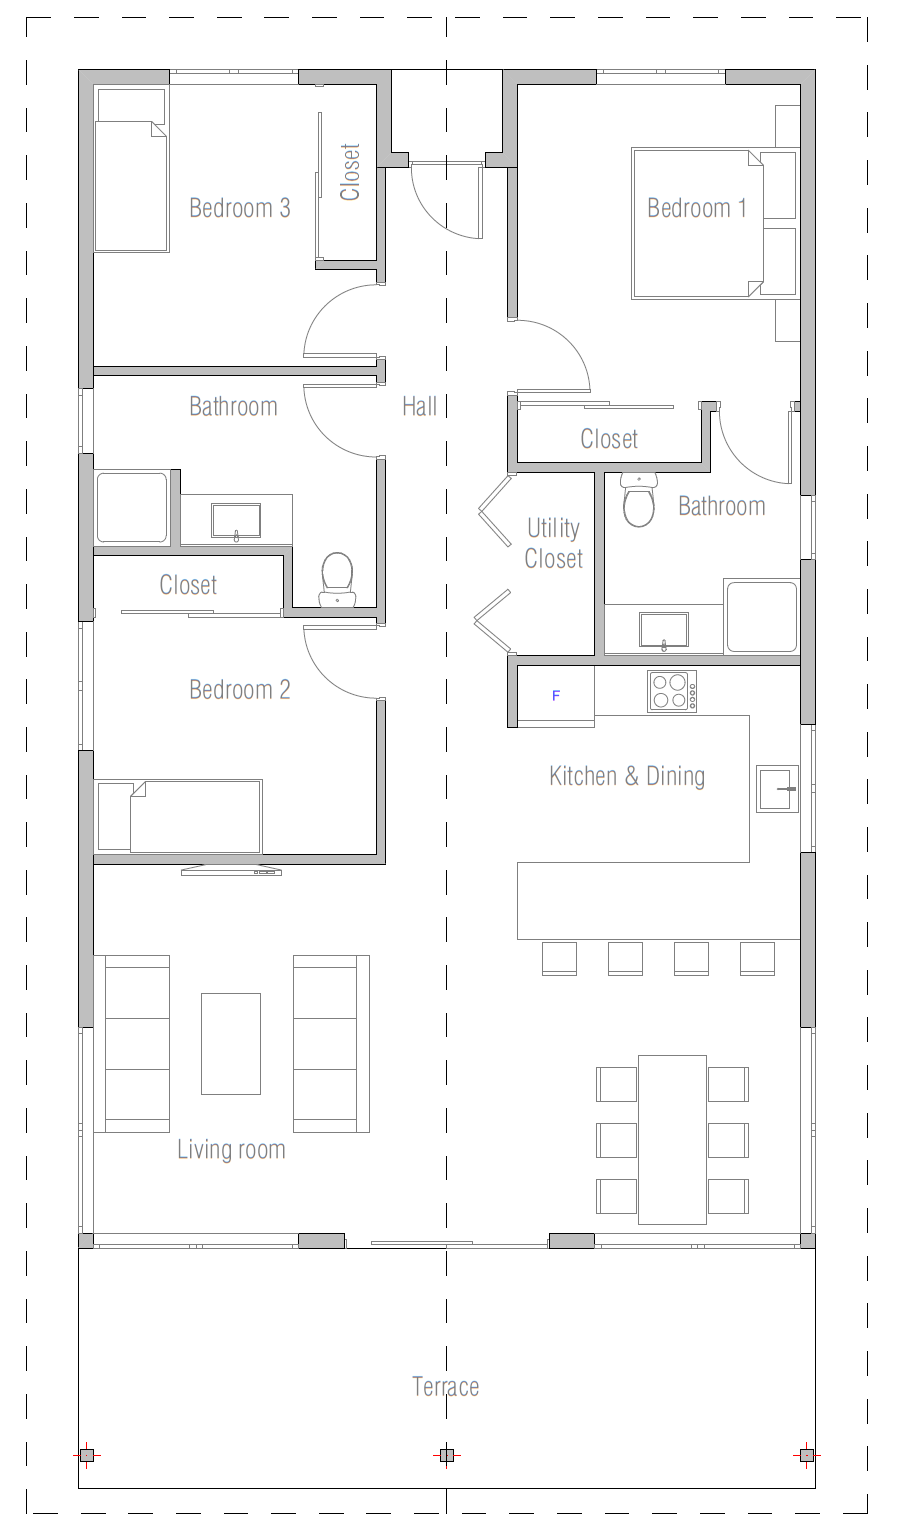 House floor plan 108 for House plans that cost 150 000 to build